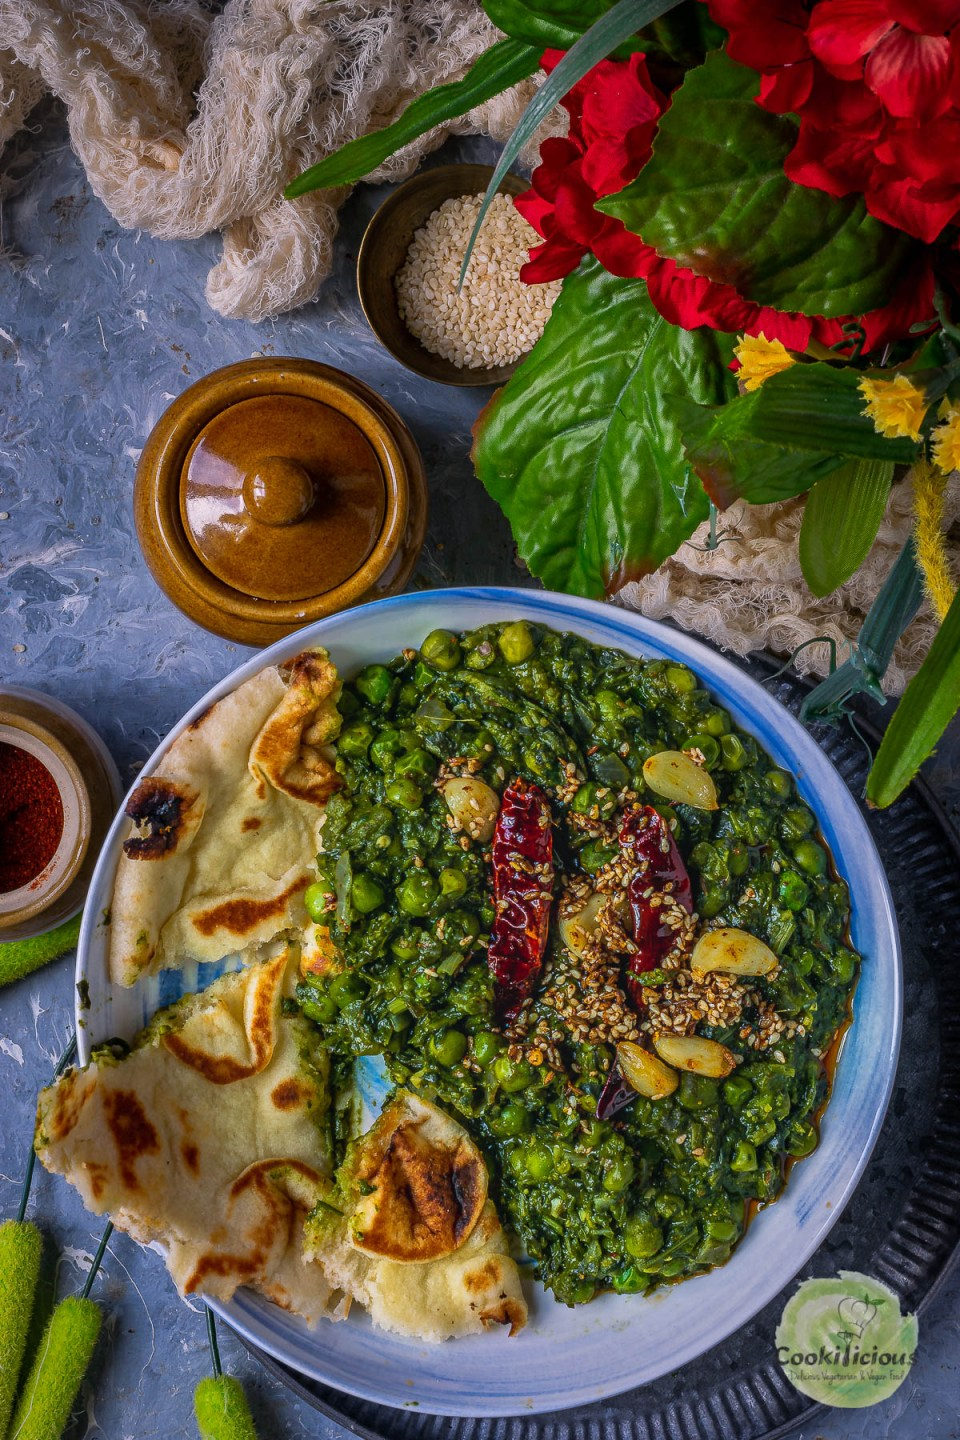 Garlicky Peas Spinach Fenugreek Curry served in a round bowl with pieces of naan next to it